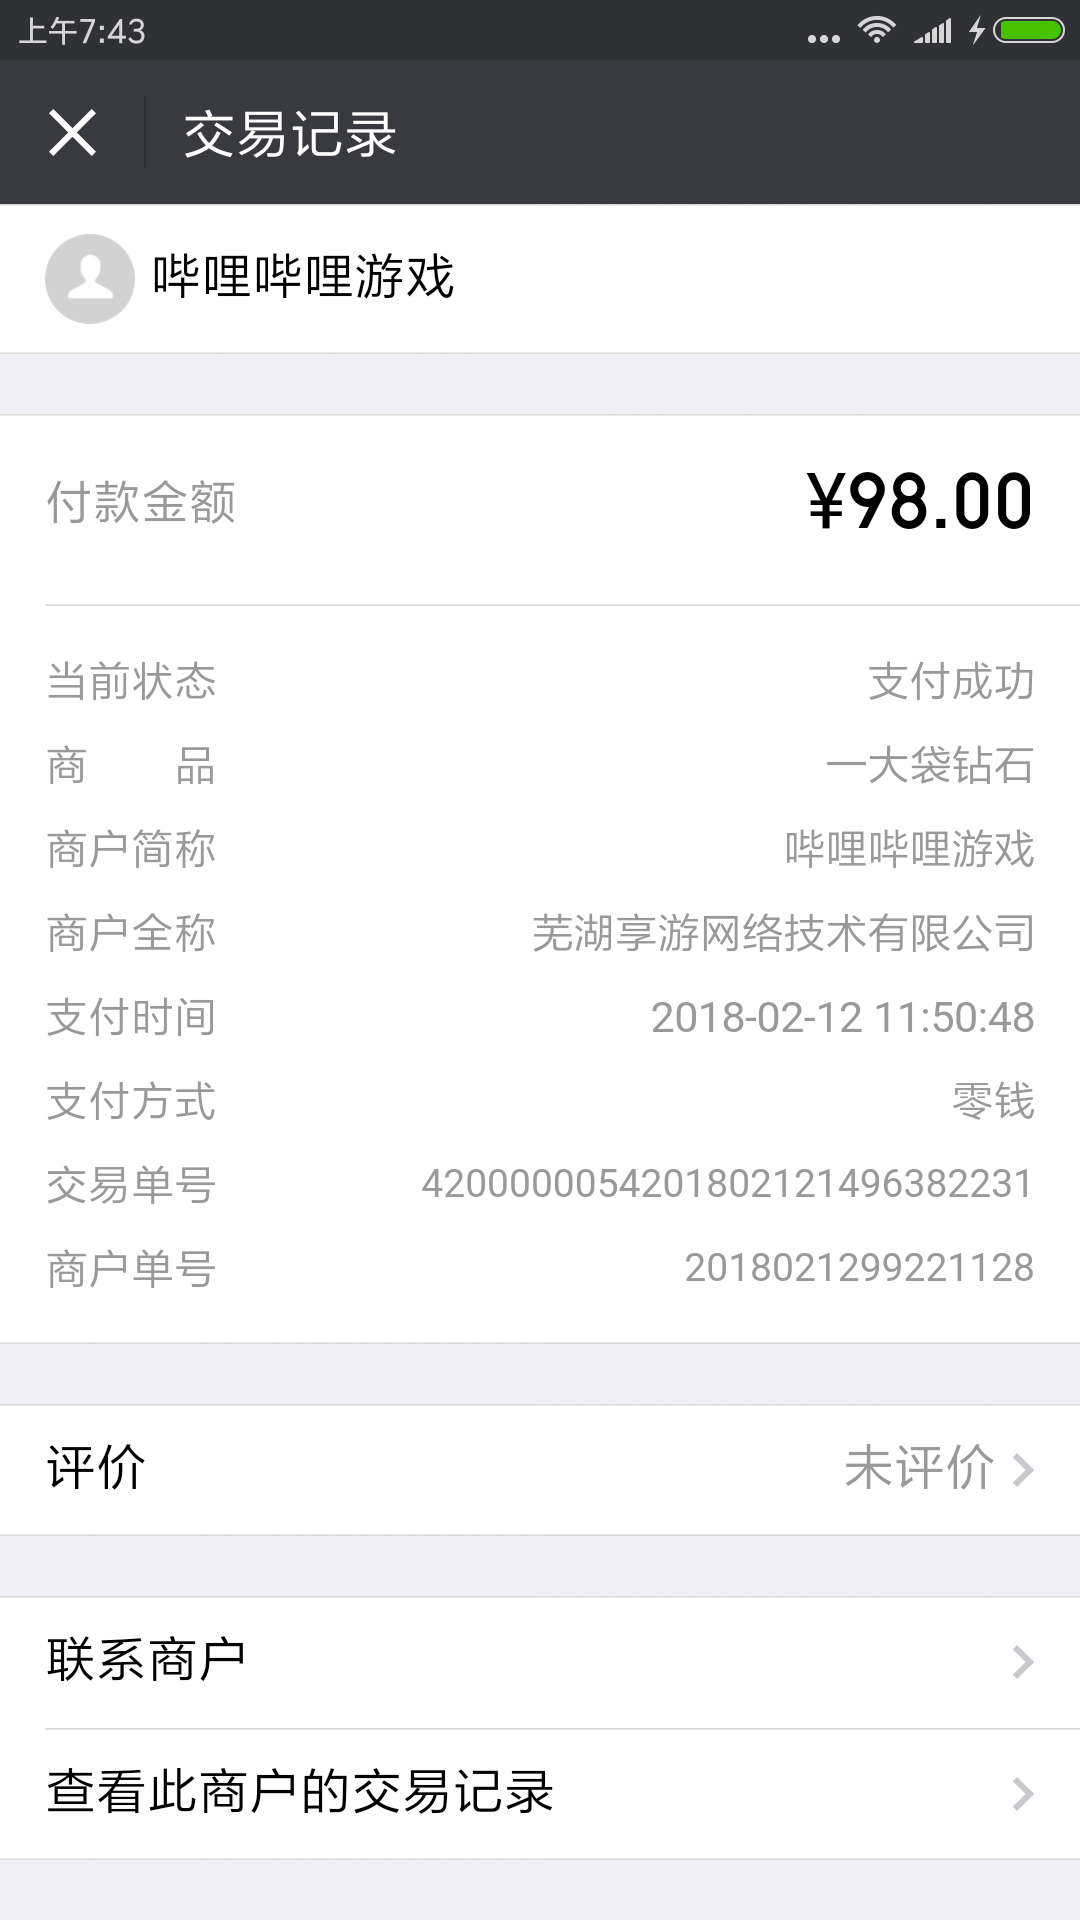 Screenshot_2018-02-22-07-43-44-670_com.tencent.mm.png